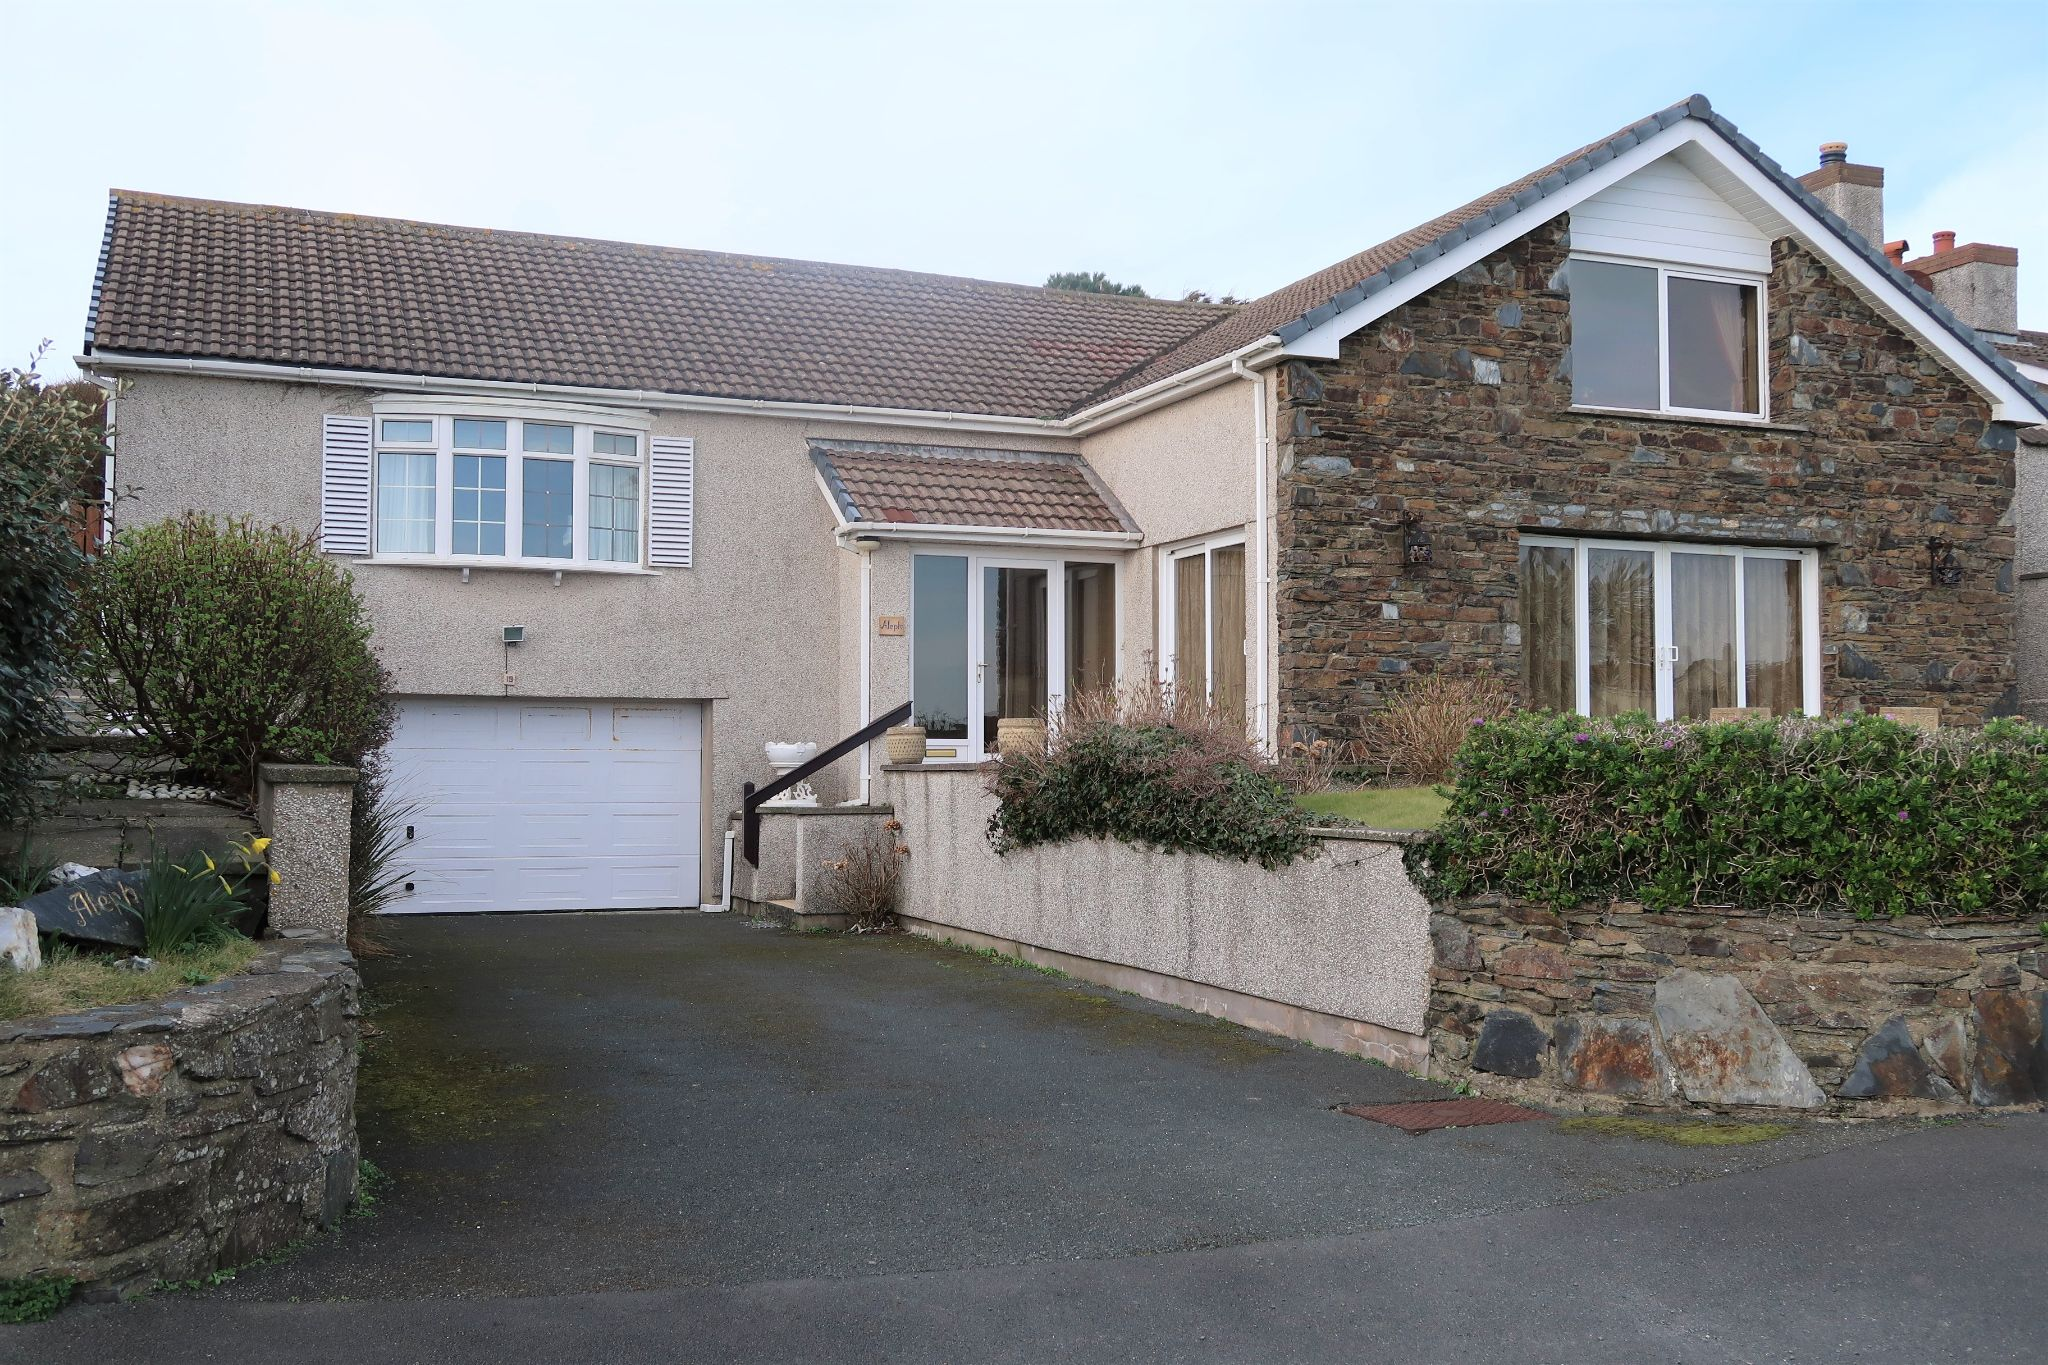 3 bedroom detached bungalow For Sale in Port St. Mary - Photograph 1